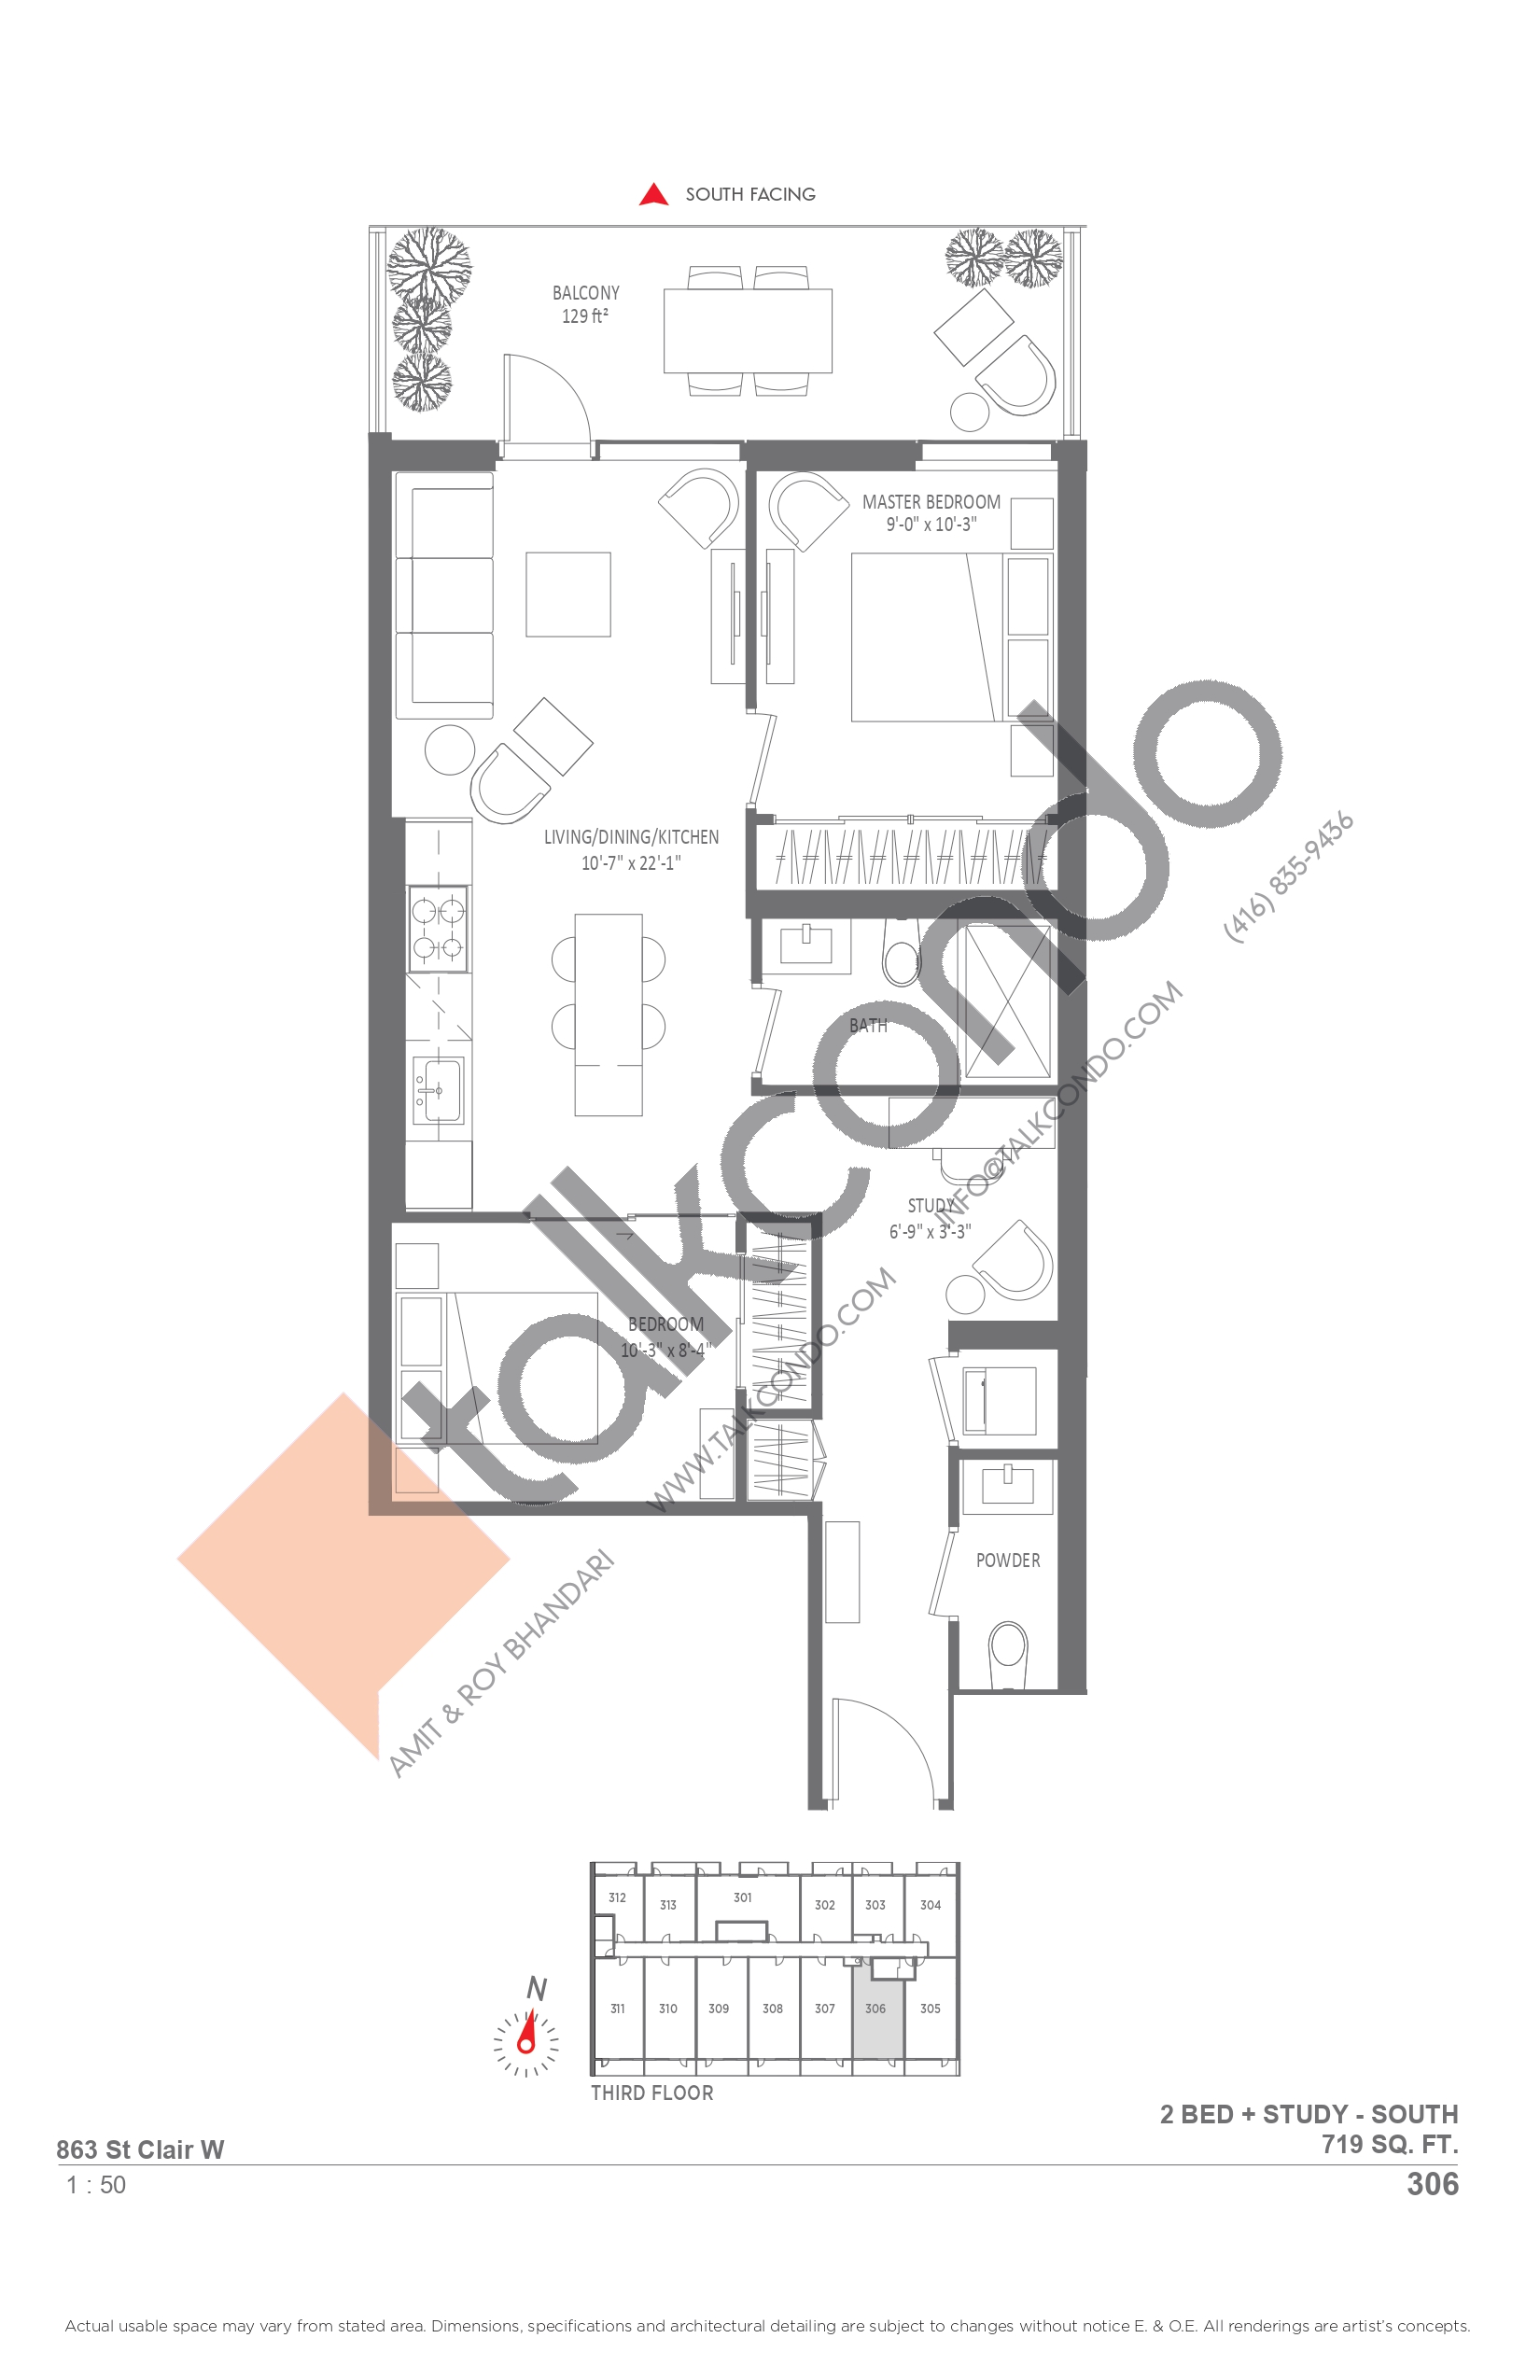 306 Floor Plan at Monza Condos - 719 sq.ft